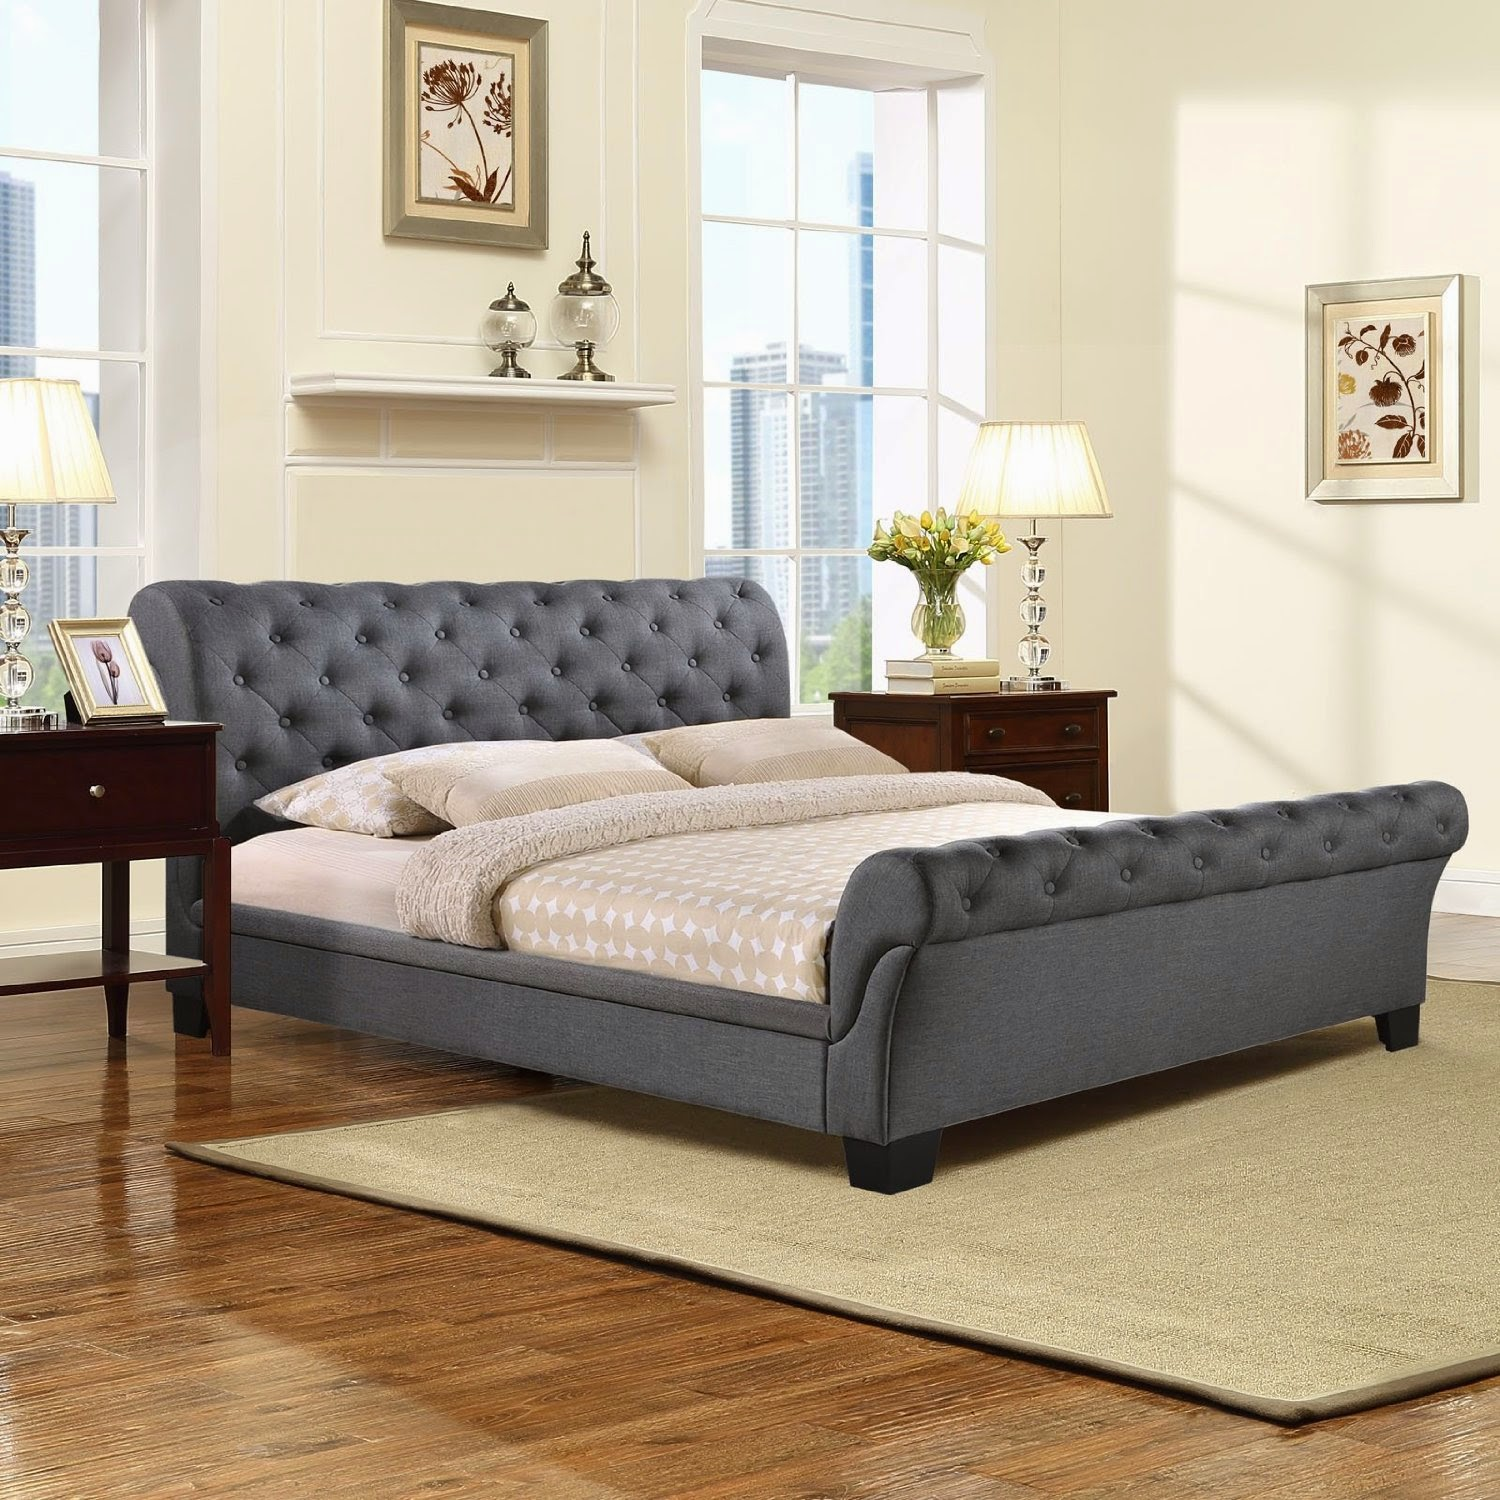 queen bed frame in gray get the product reviews from the experts at this blog find the best product like kate queen fabric bed frame in